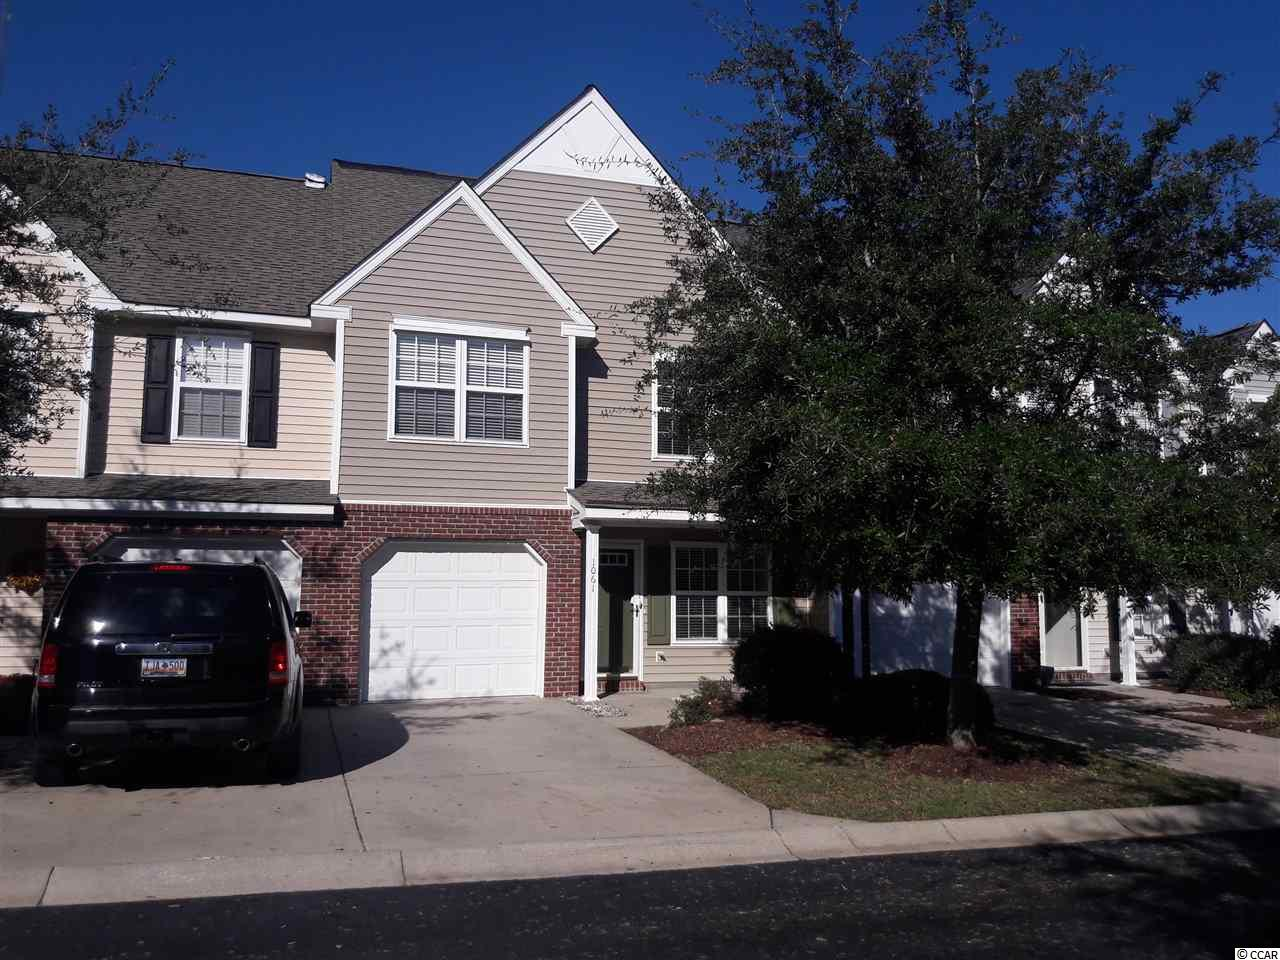 Townhouse for Sale at 1061 Williston Loop 1061 Williston Loop Murrells Inlet, South Carolina 29576 United States